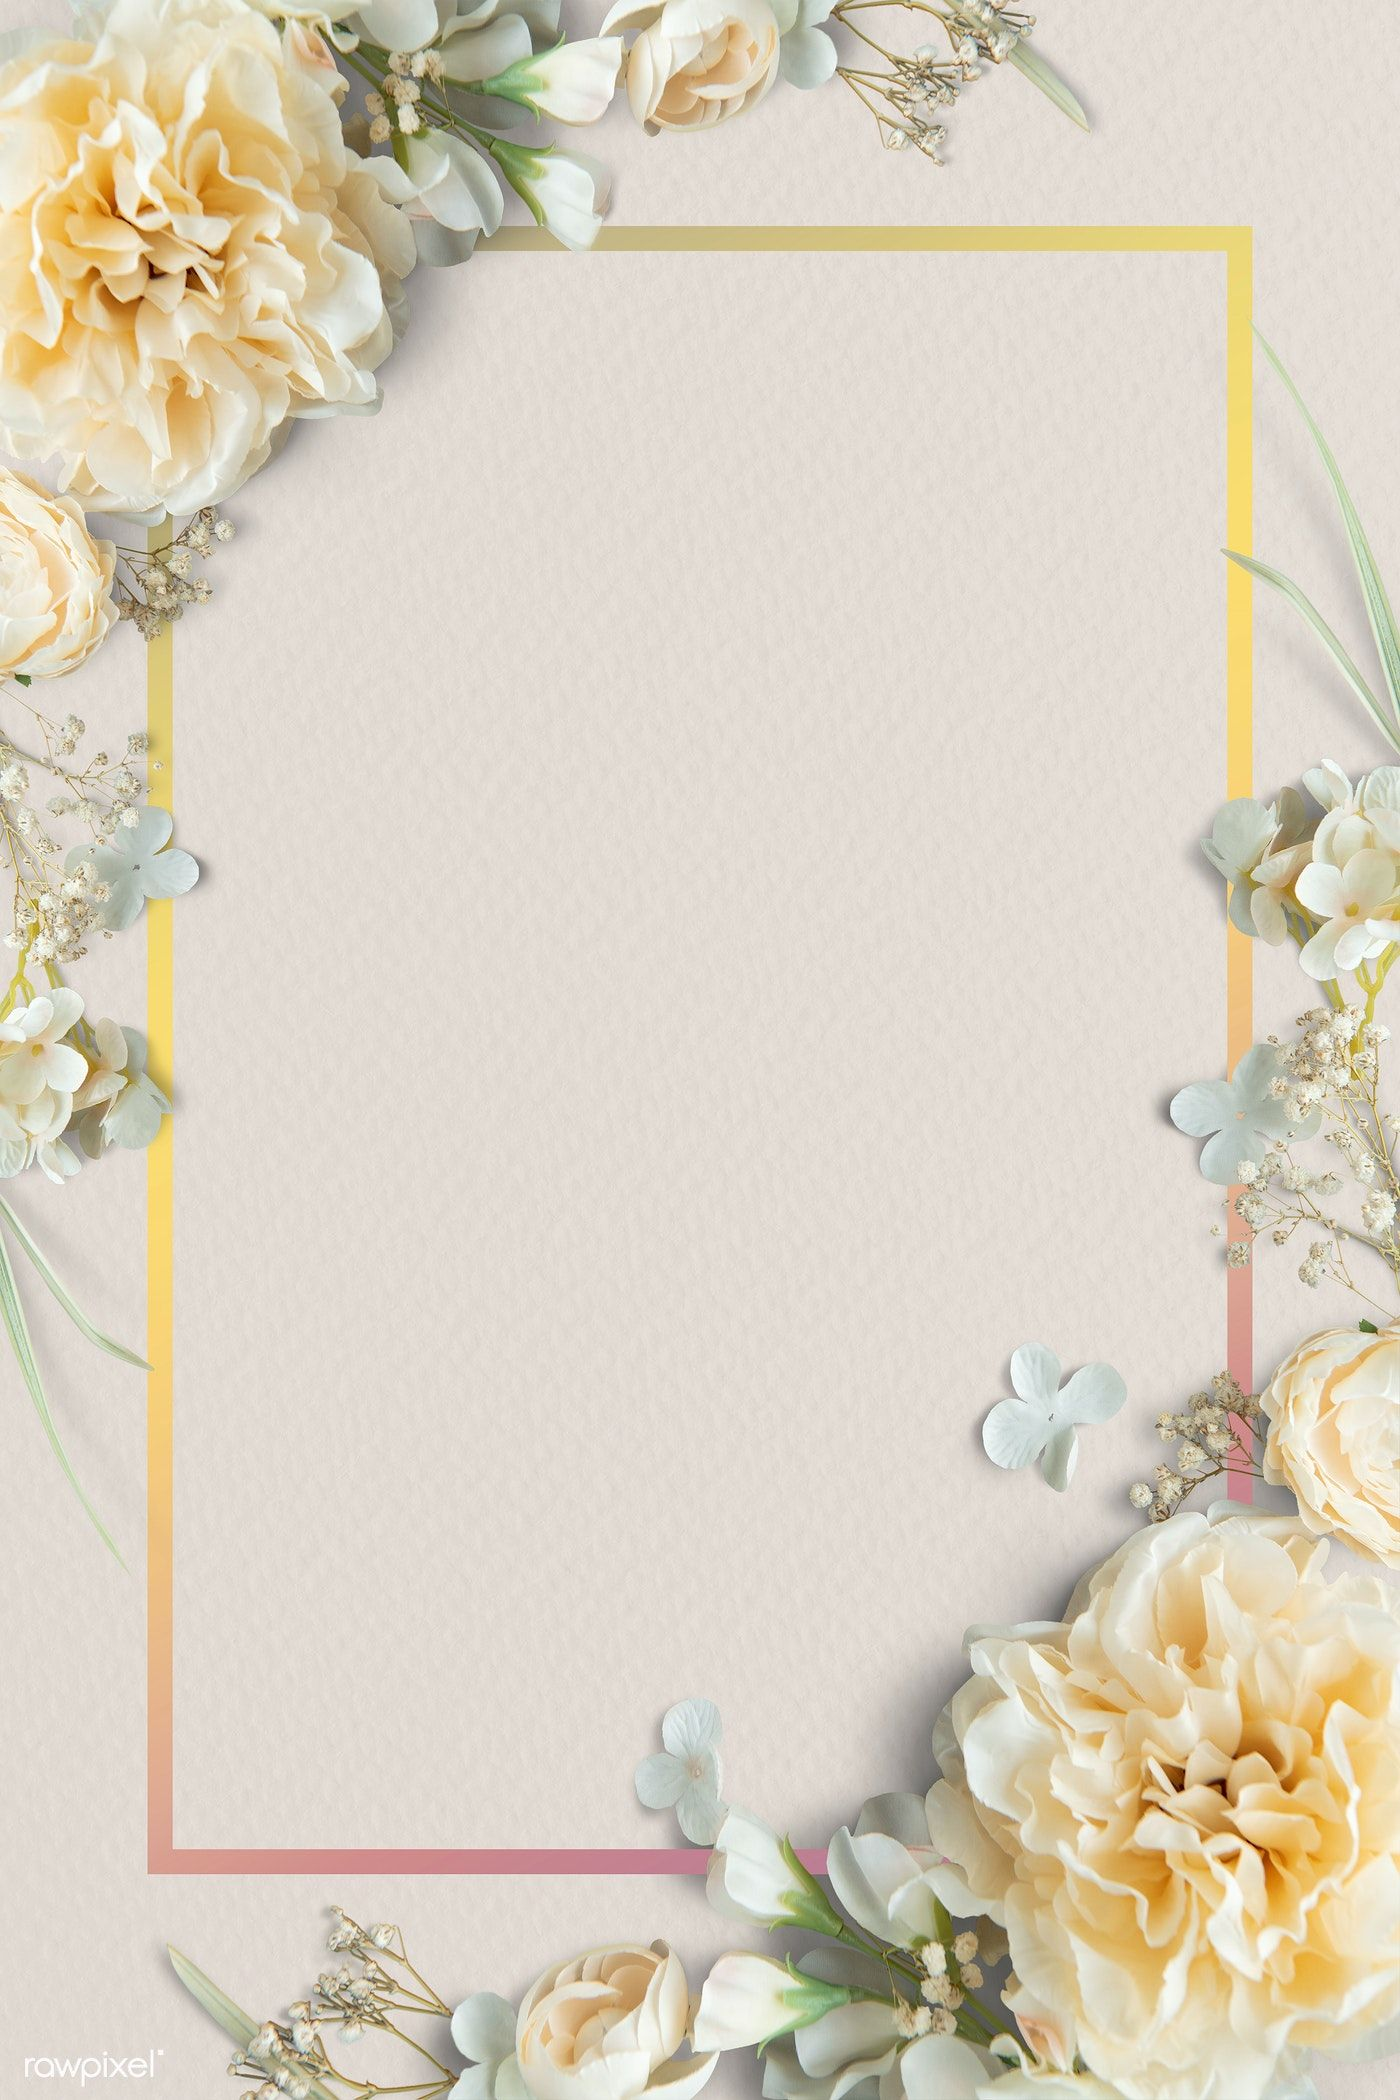 Download Premium Vector Of Floral Rectangle Golden Frame Vector 1212092 Floral Border Design Flower Frame Frame Design